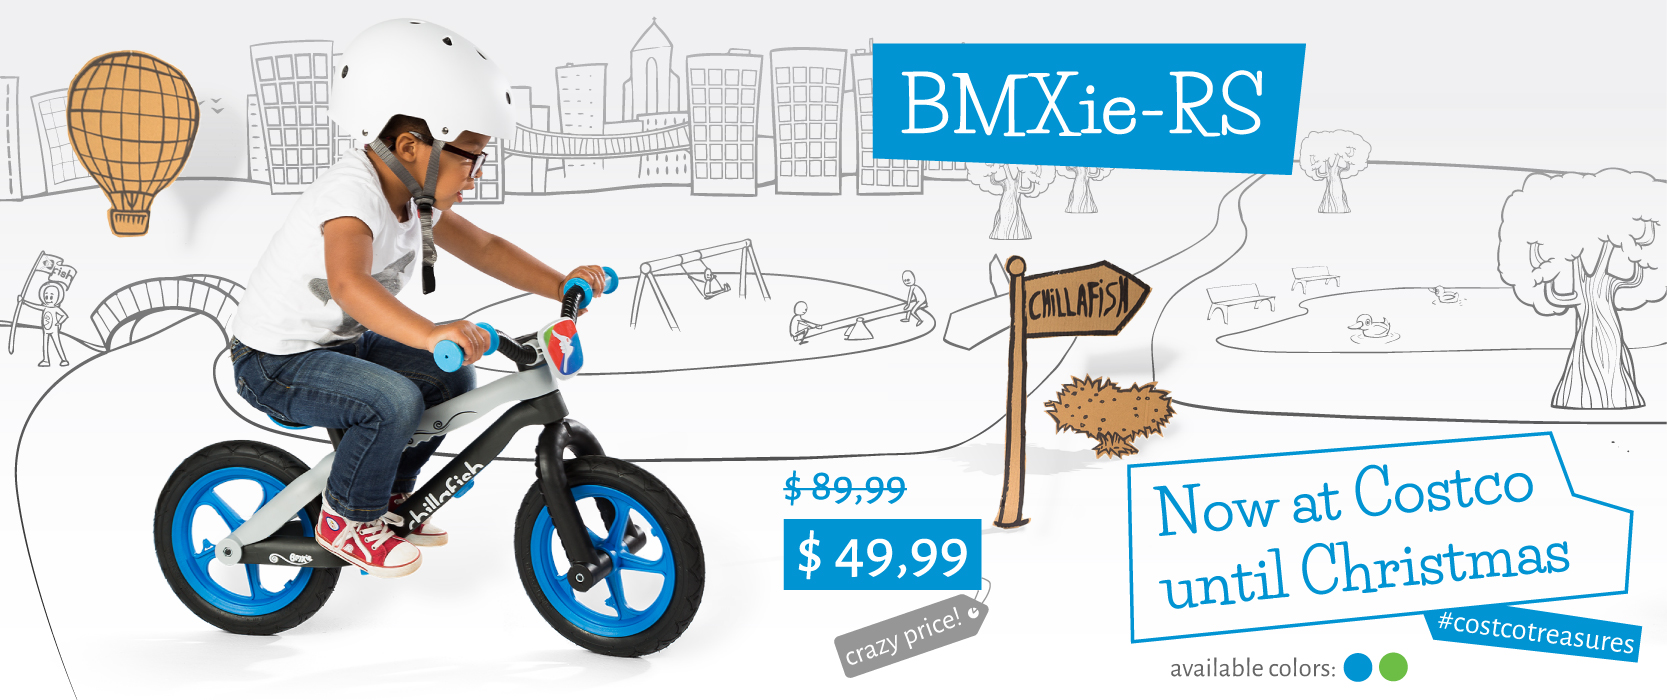 BMXie-RS now at Costco